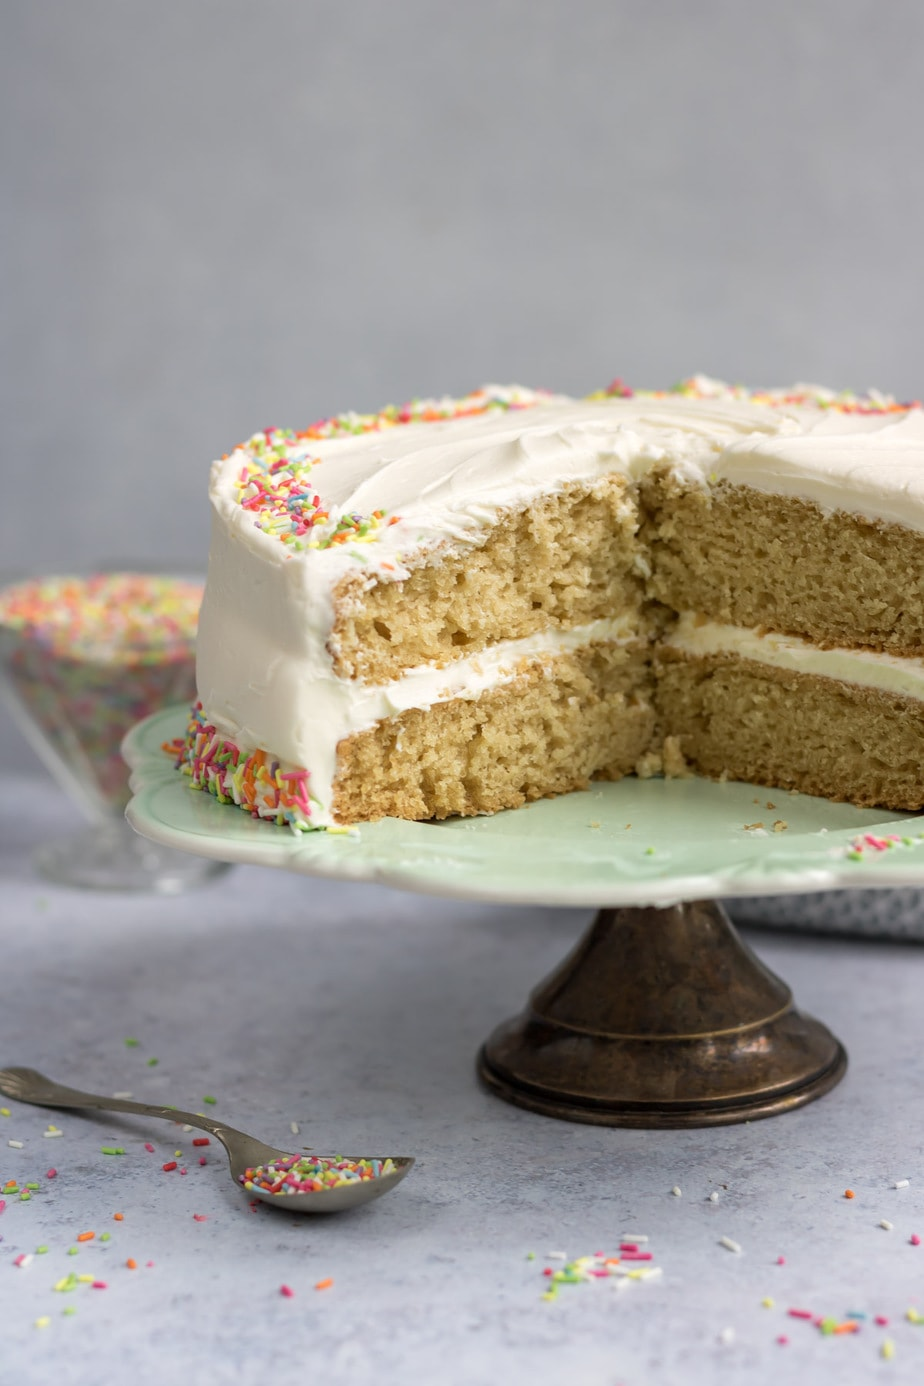 Vegan layer cake with slices removed, on a cake stand